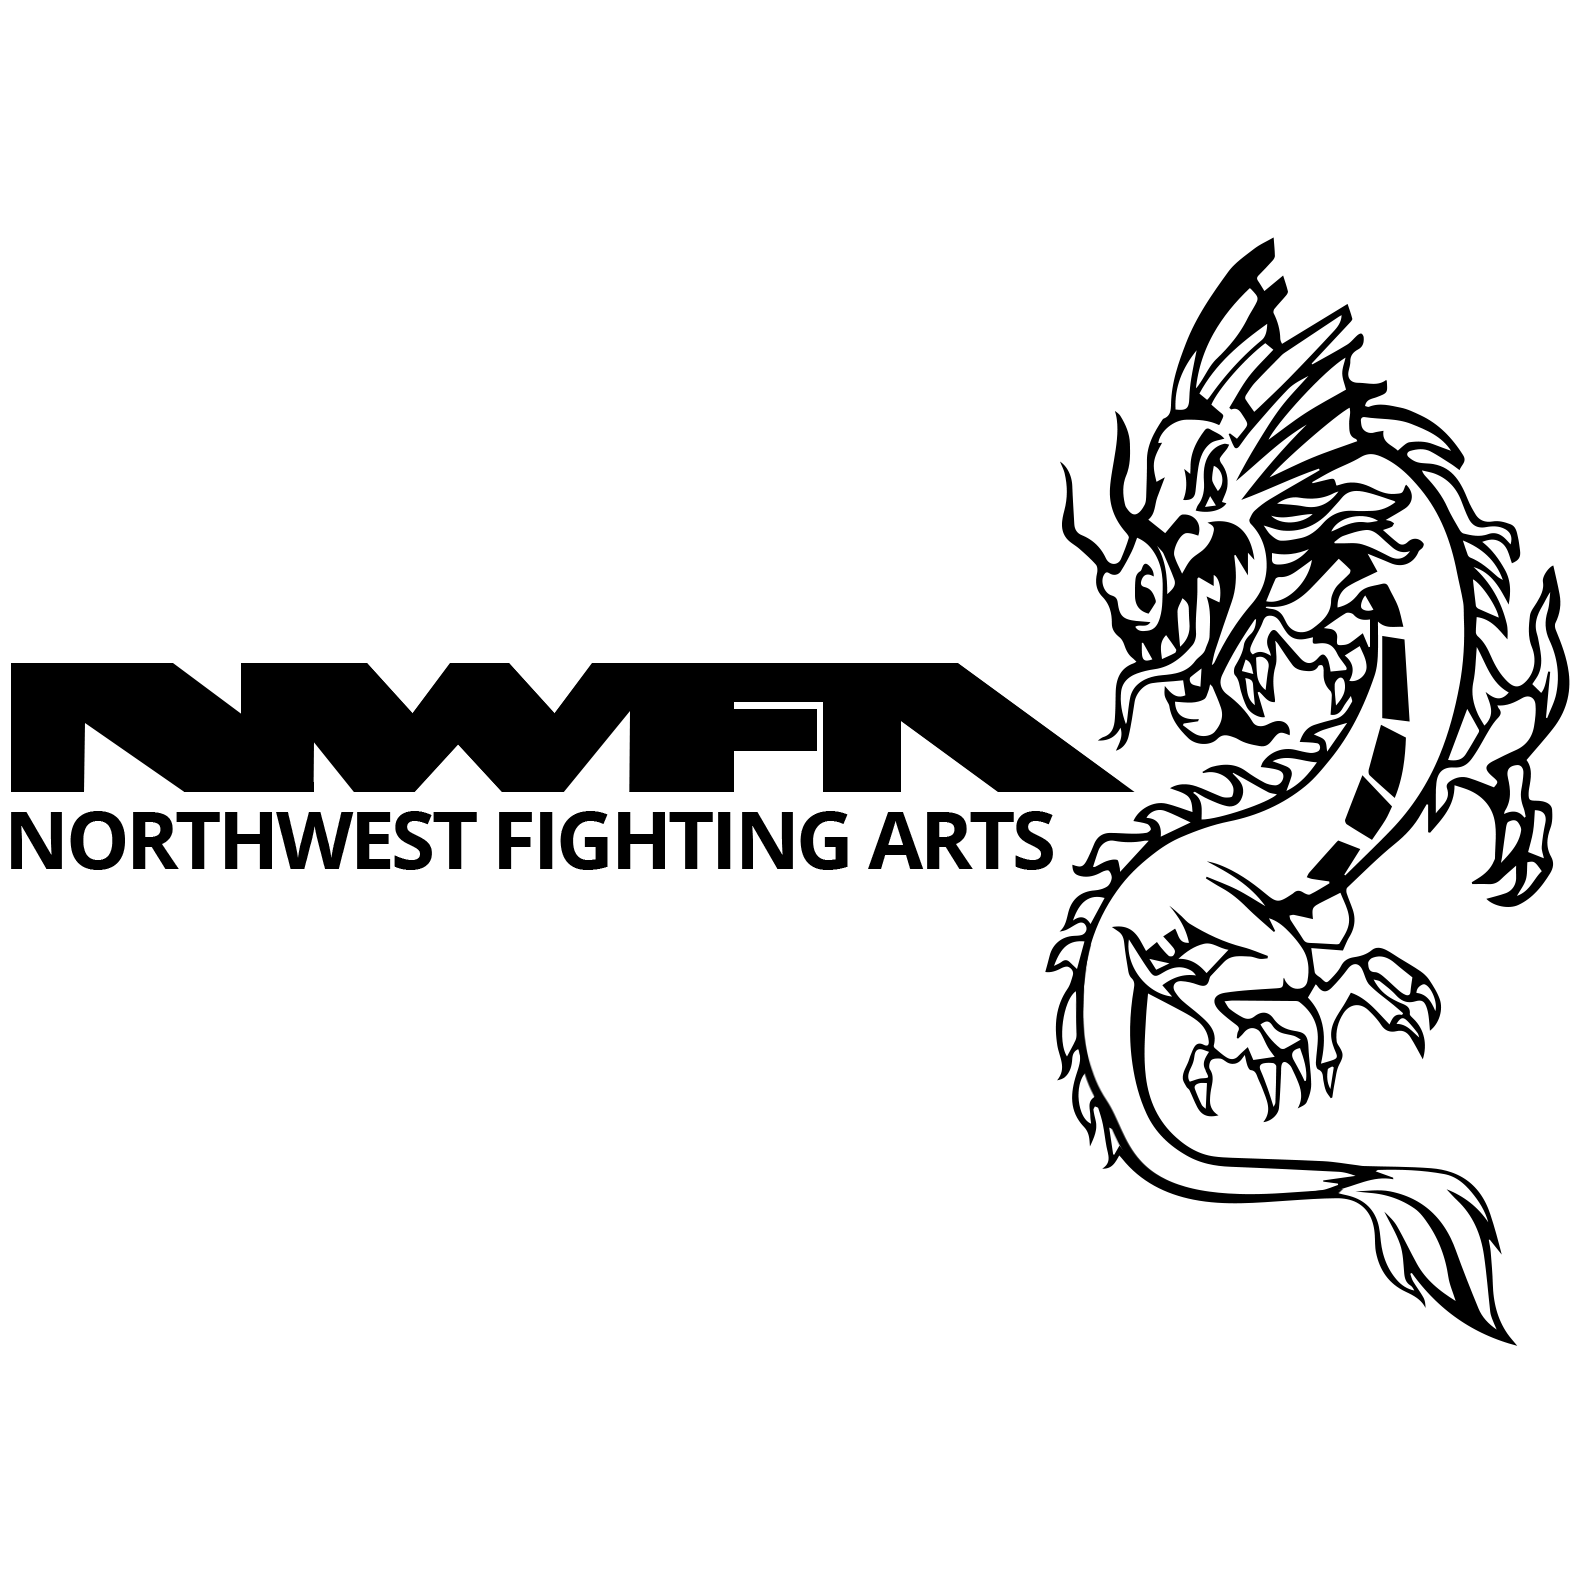 Northwest Fighting Arts